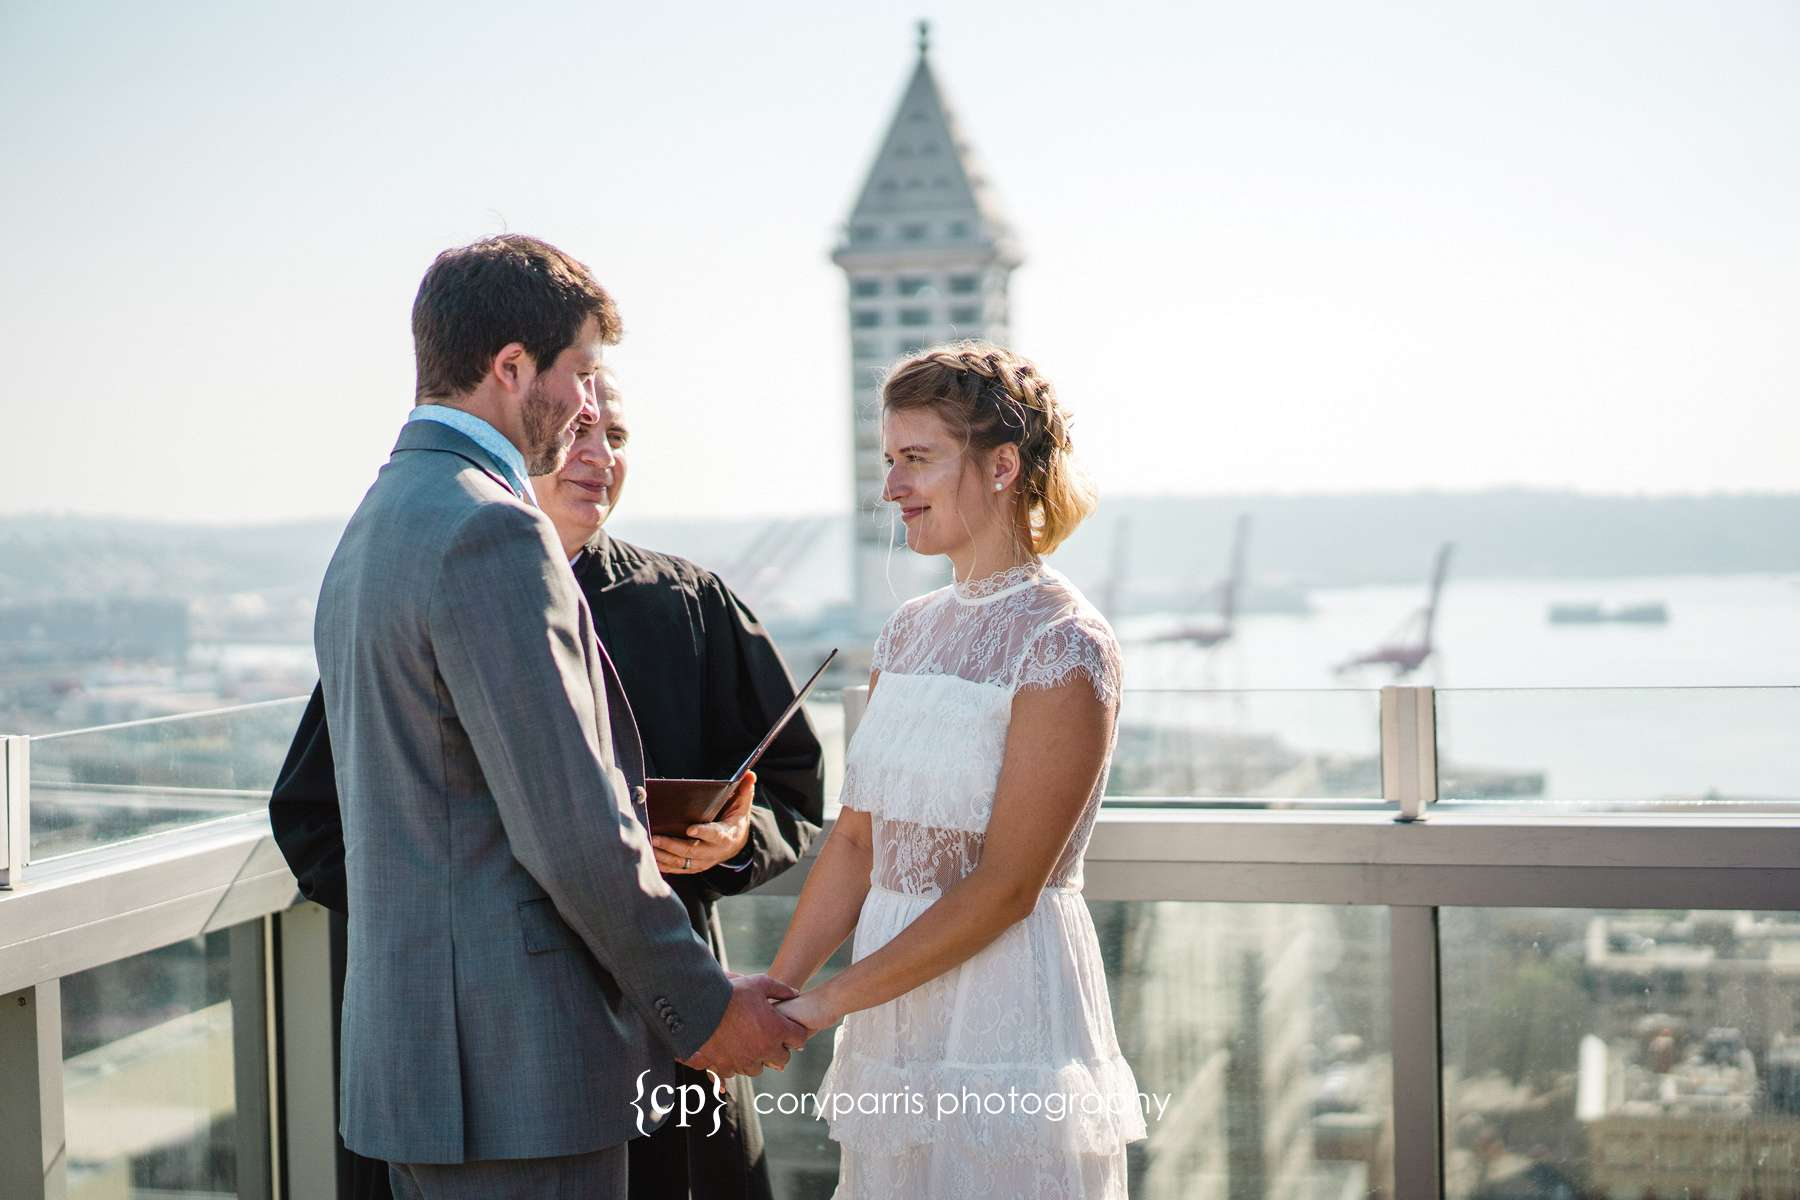 172-Seattle-Elopement-Courthouse.jpg